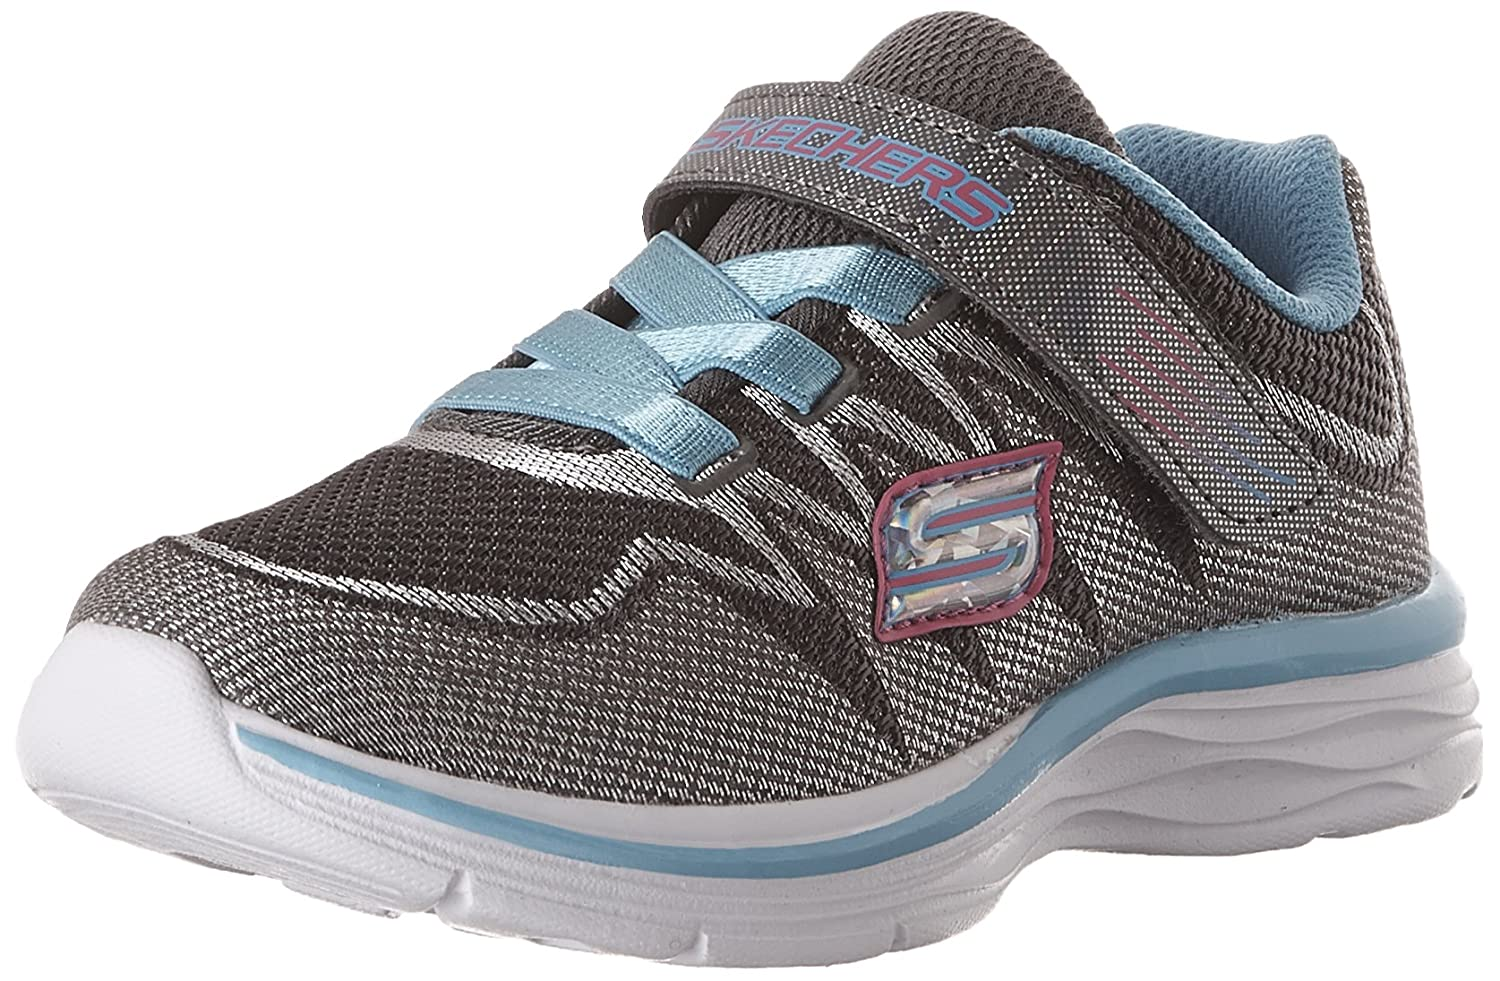 Skechers Kids Girls Dream N' Dash Whimsy Girl Velcro Strap Sneaker B06W5985XX 5 M US Toddler|Grey/Blue